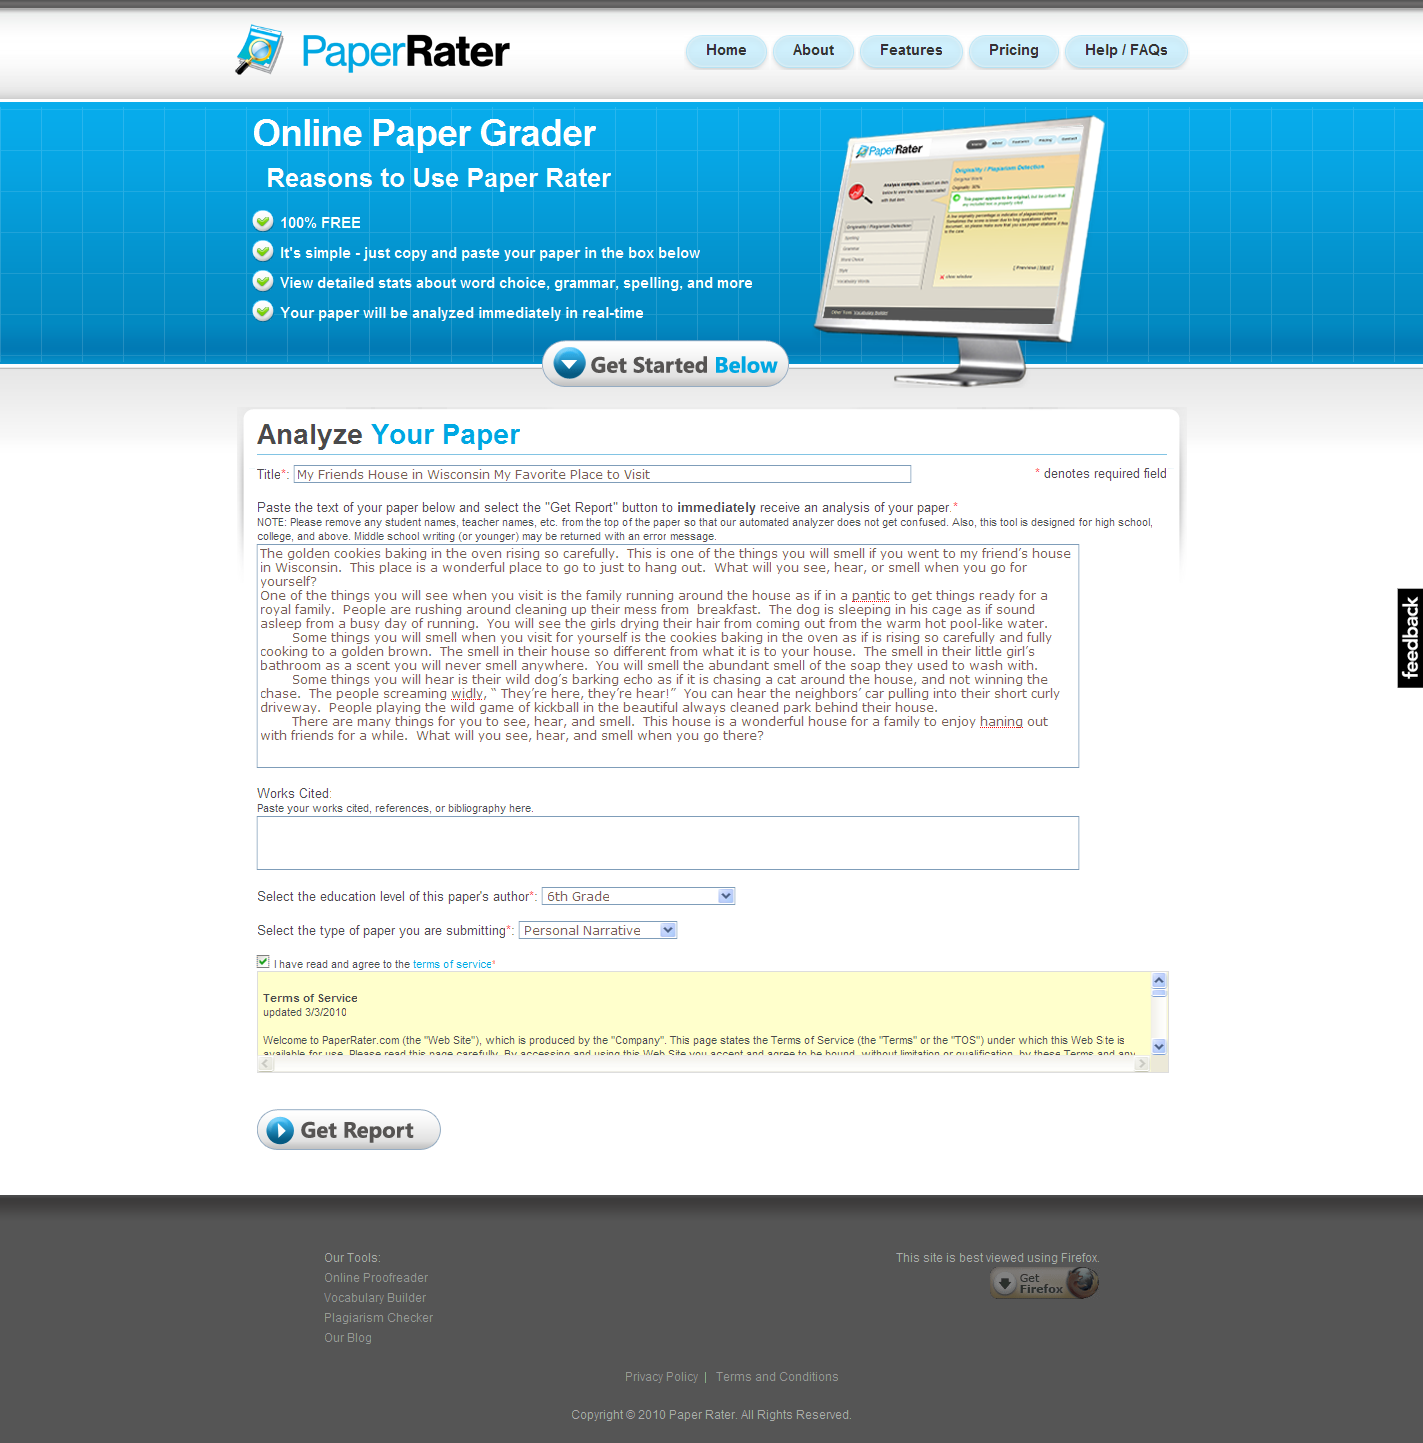 001 Online Plagiarism Checker Paper Rater Aviarypaperrater Compicture2 Amazing Full